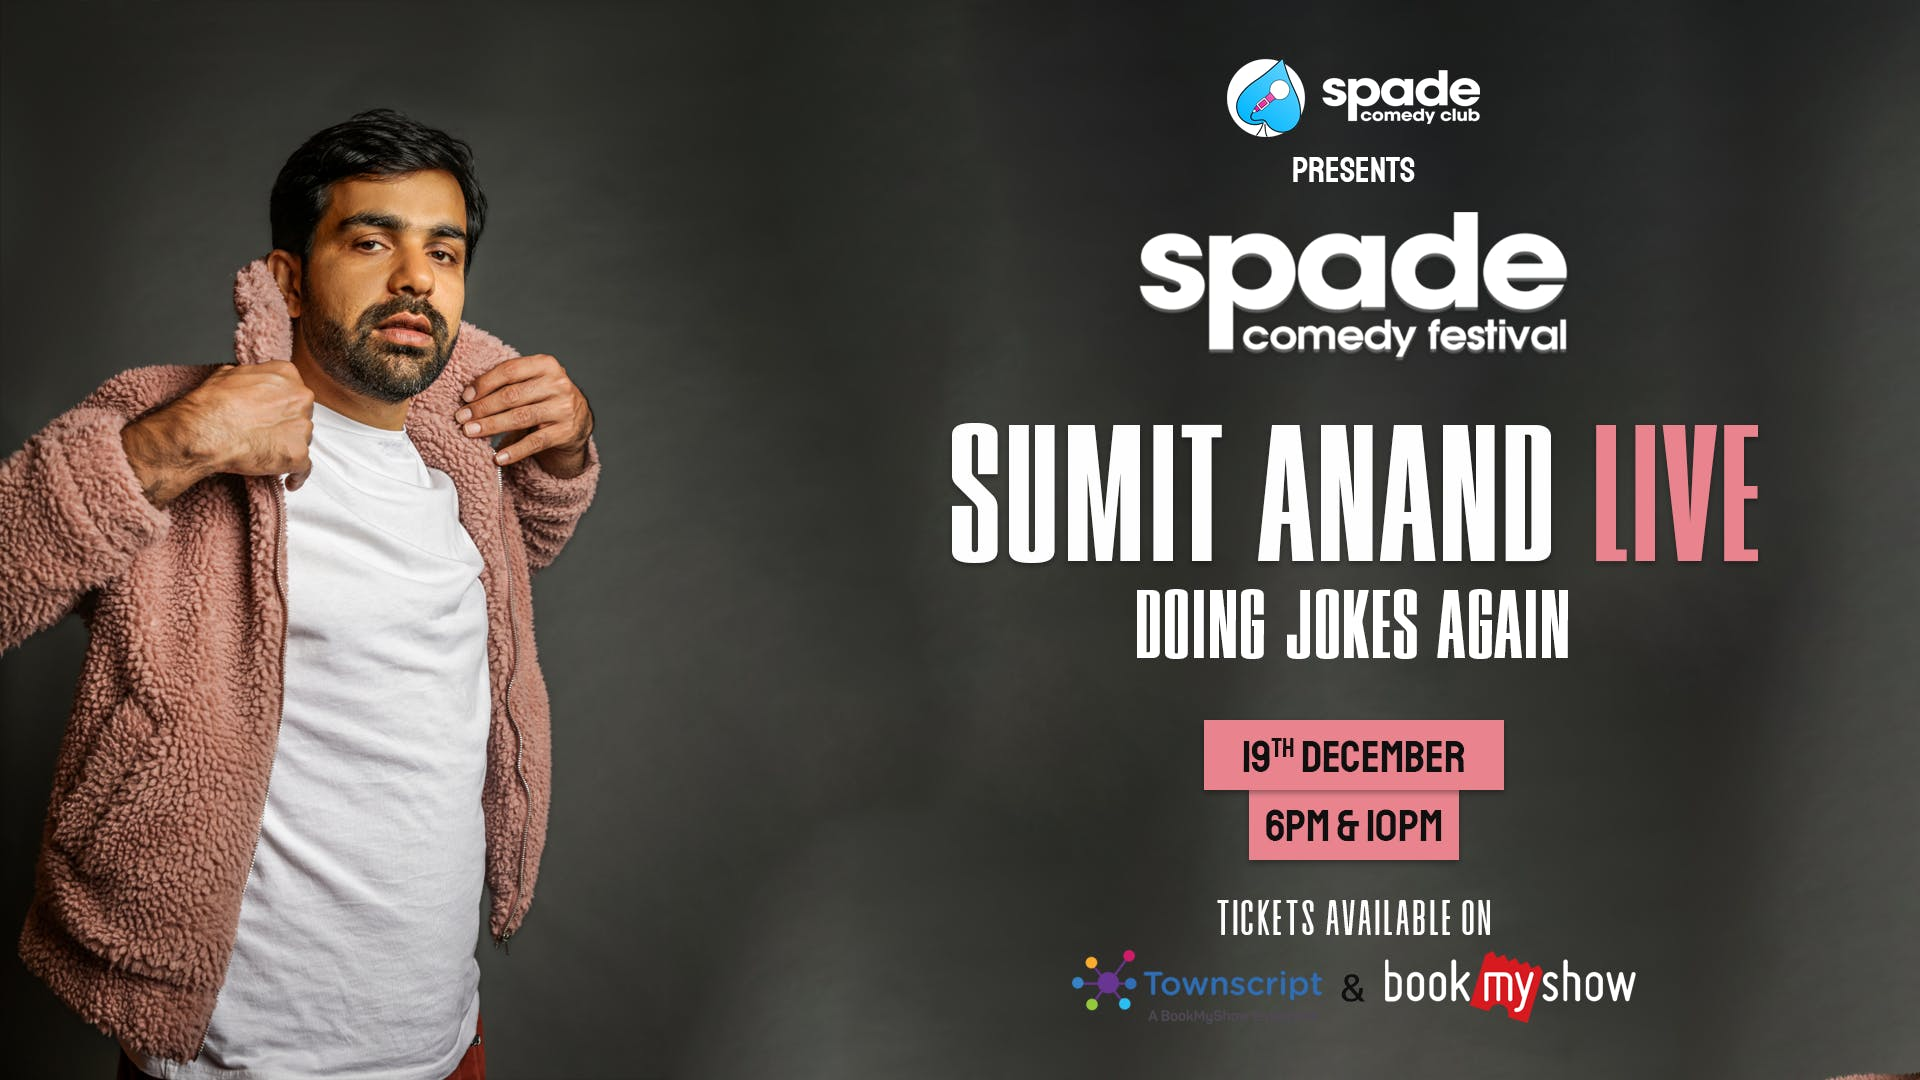 Sumit Anand : Doing Jokes Again at Spade Comedy Festival